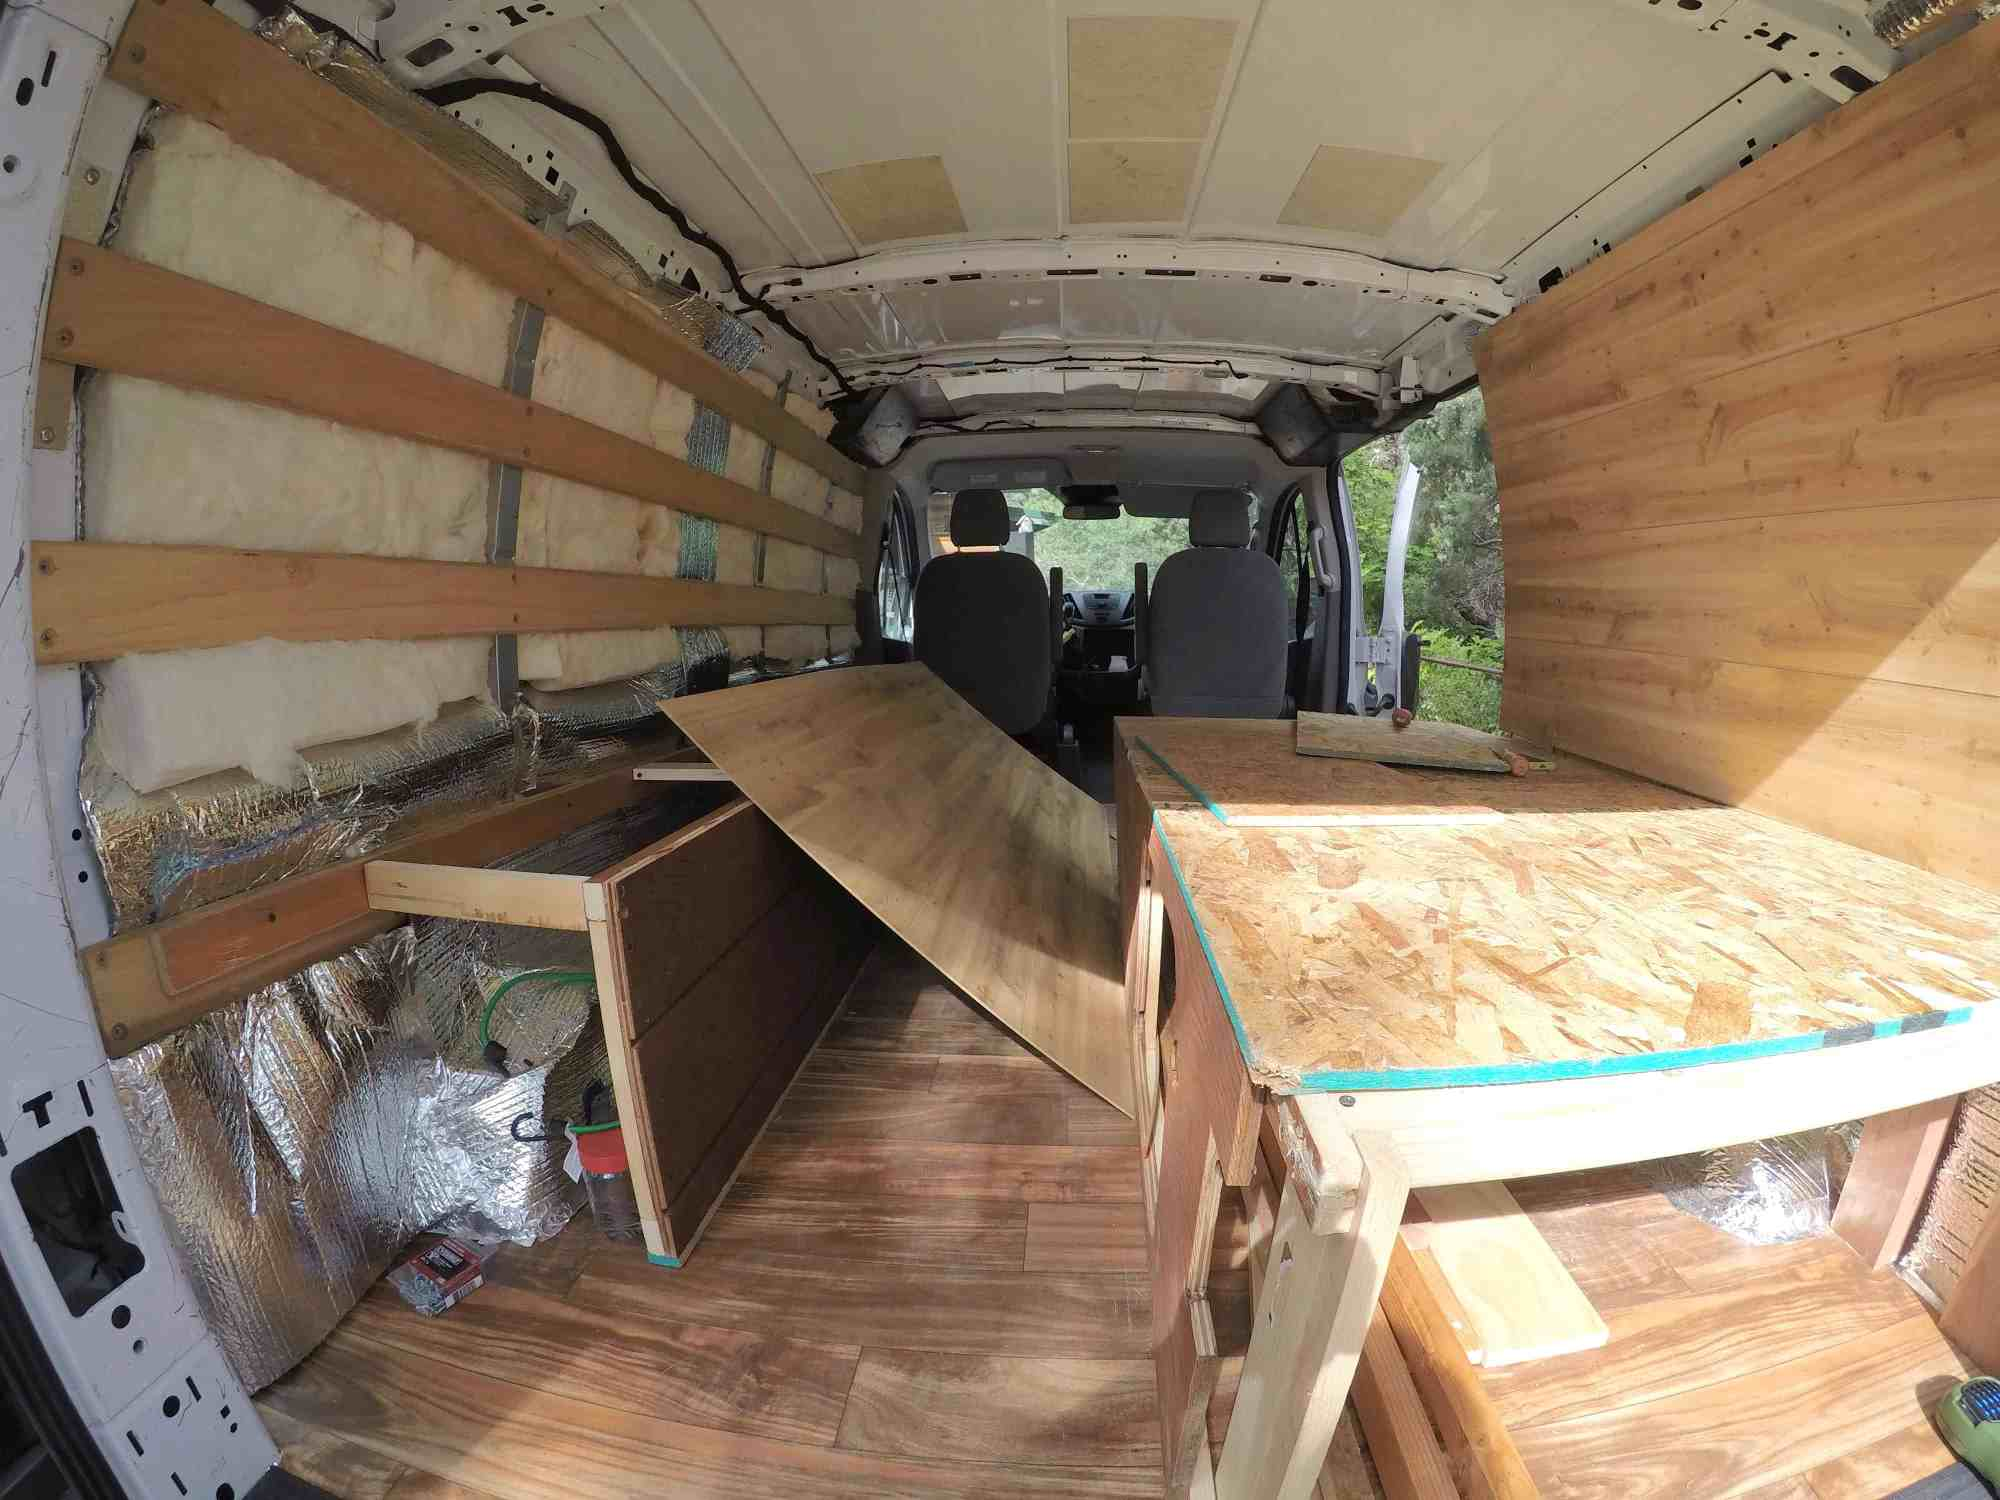 hight resolution of the chuck box is not a permanent fixture in the van which was a part of the design so after we created the bedframe and side storage unit